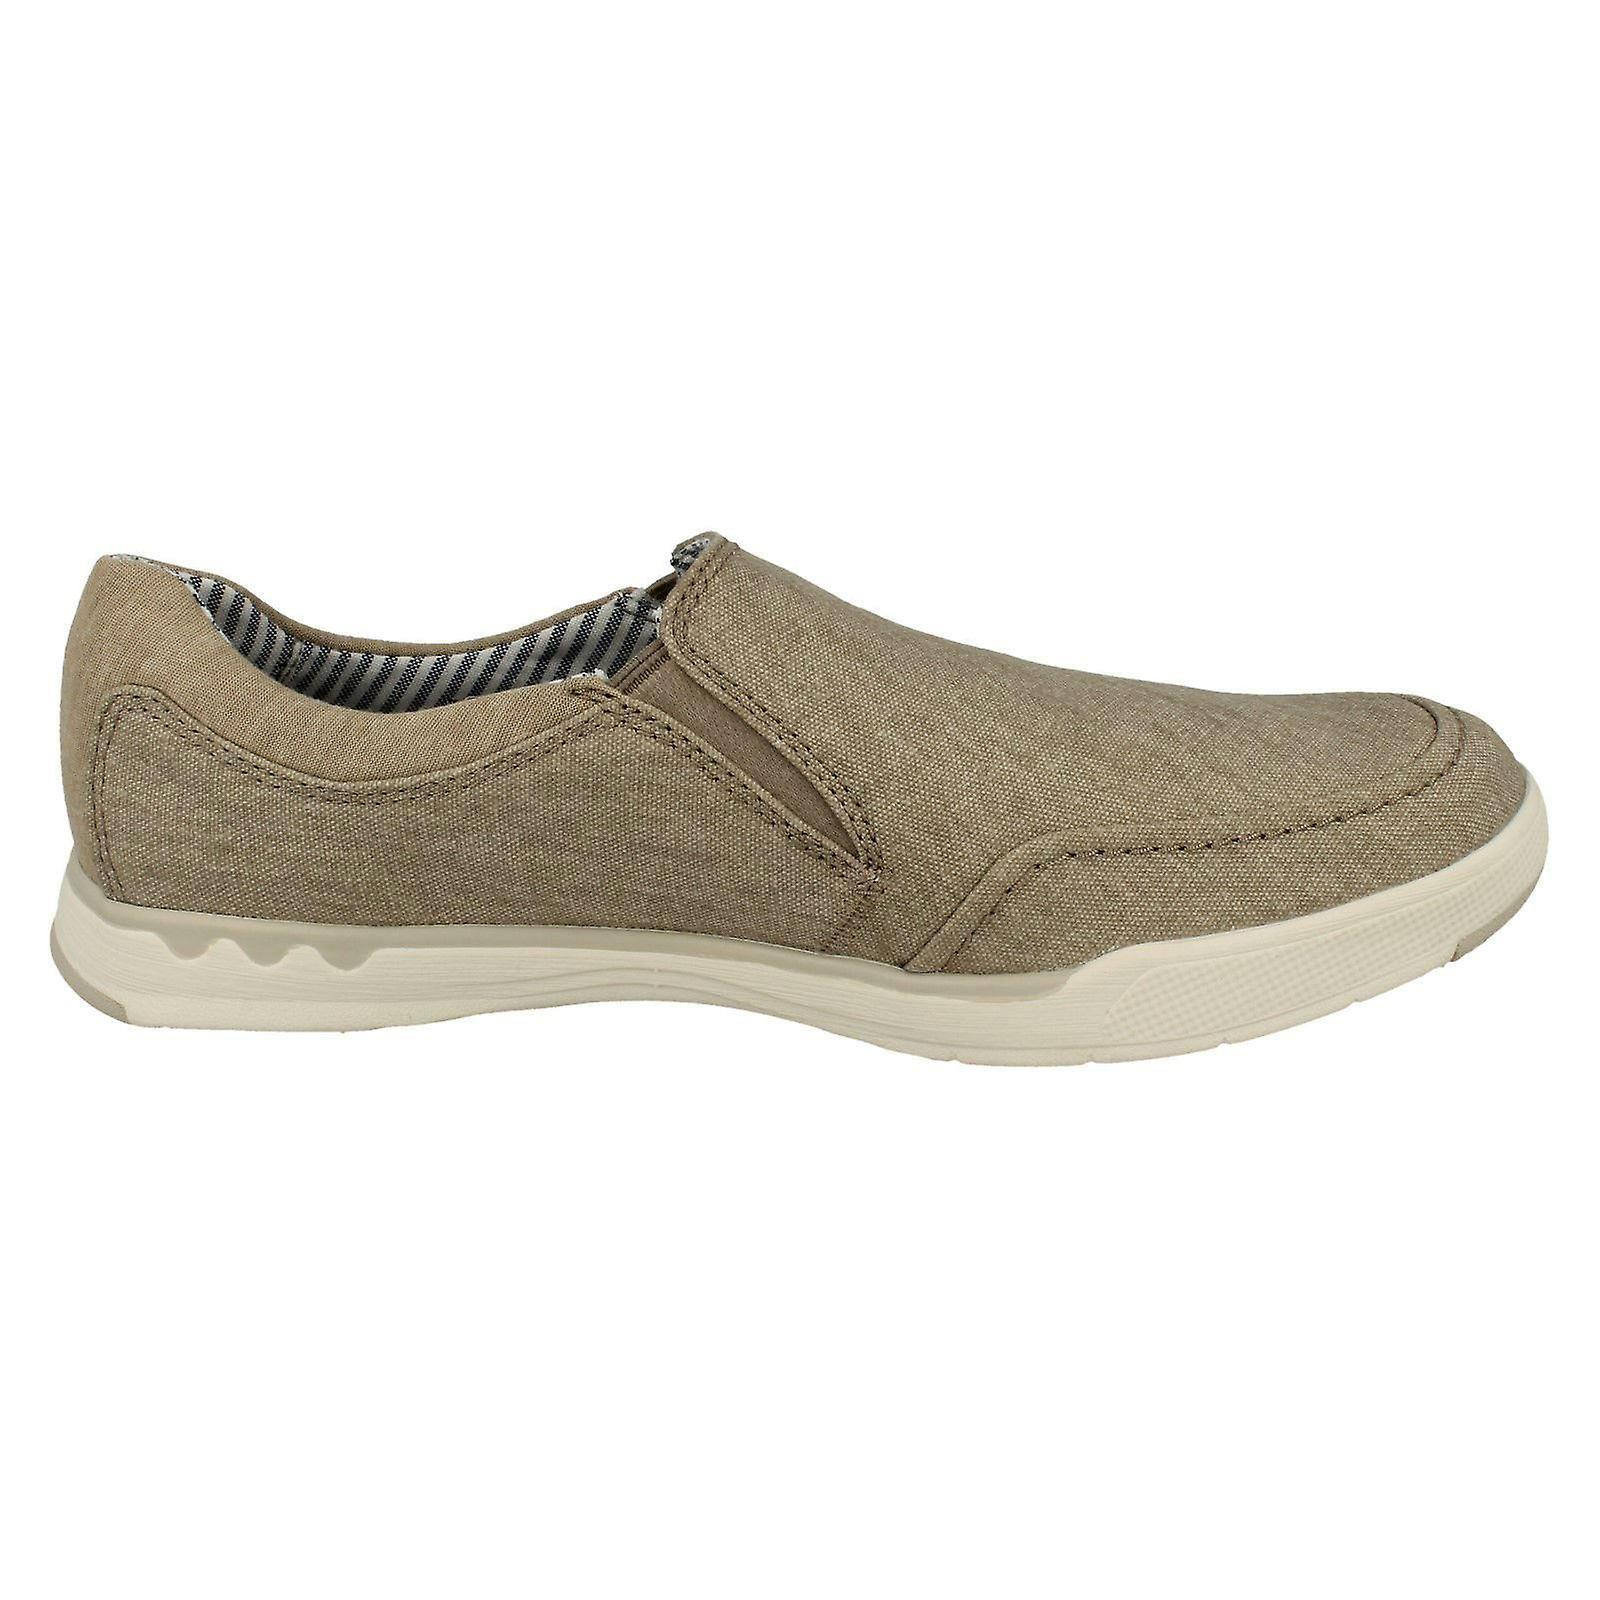 Mens Clarks Slip Casual Chaussures Étape Isle Feuillet